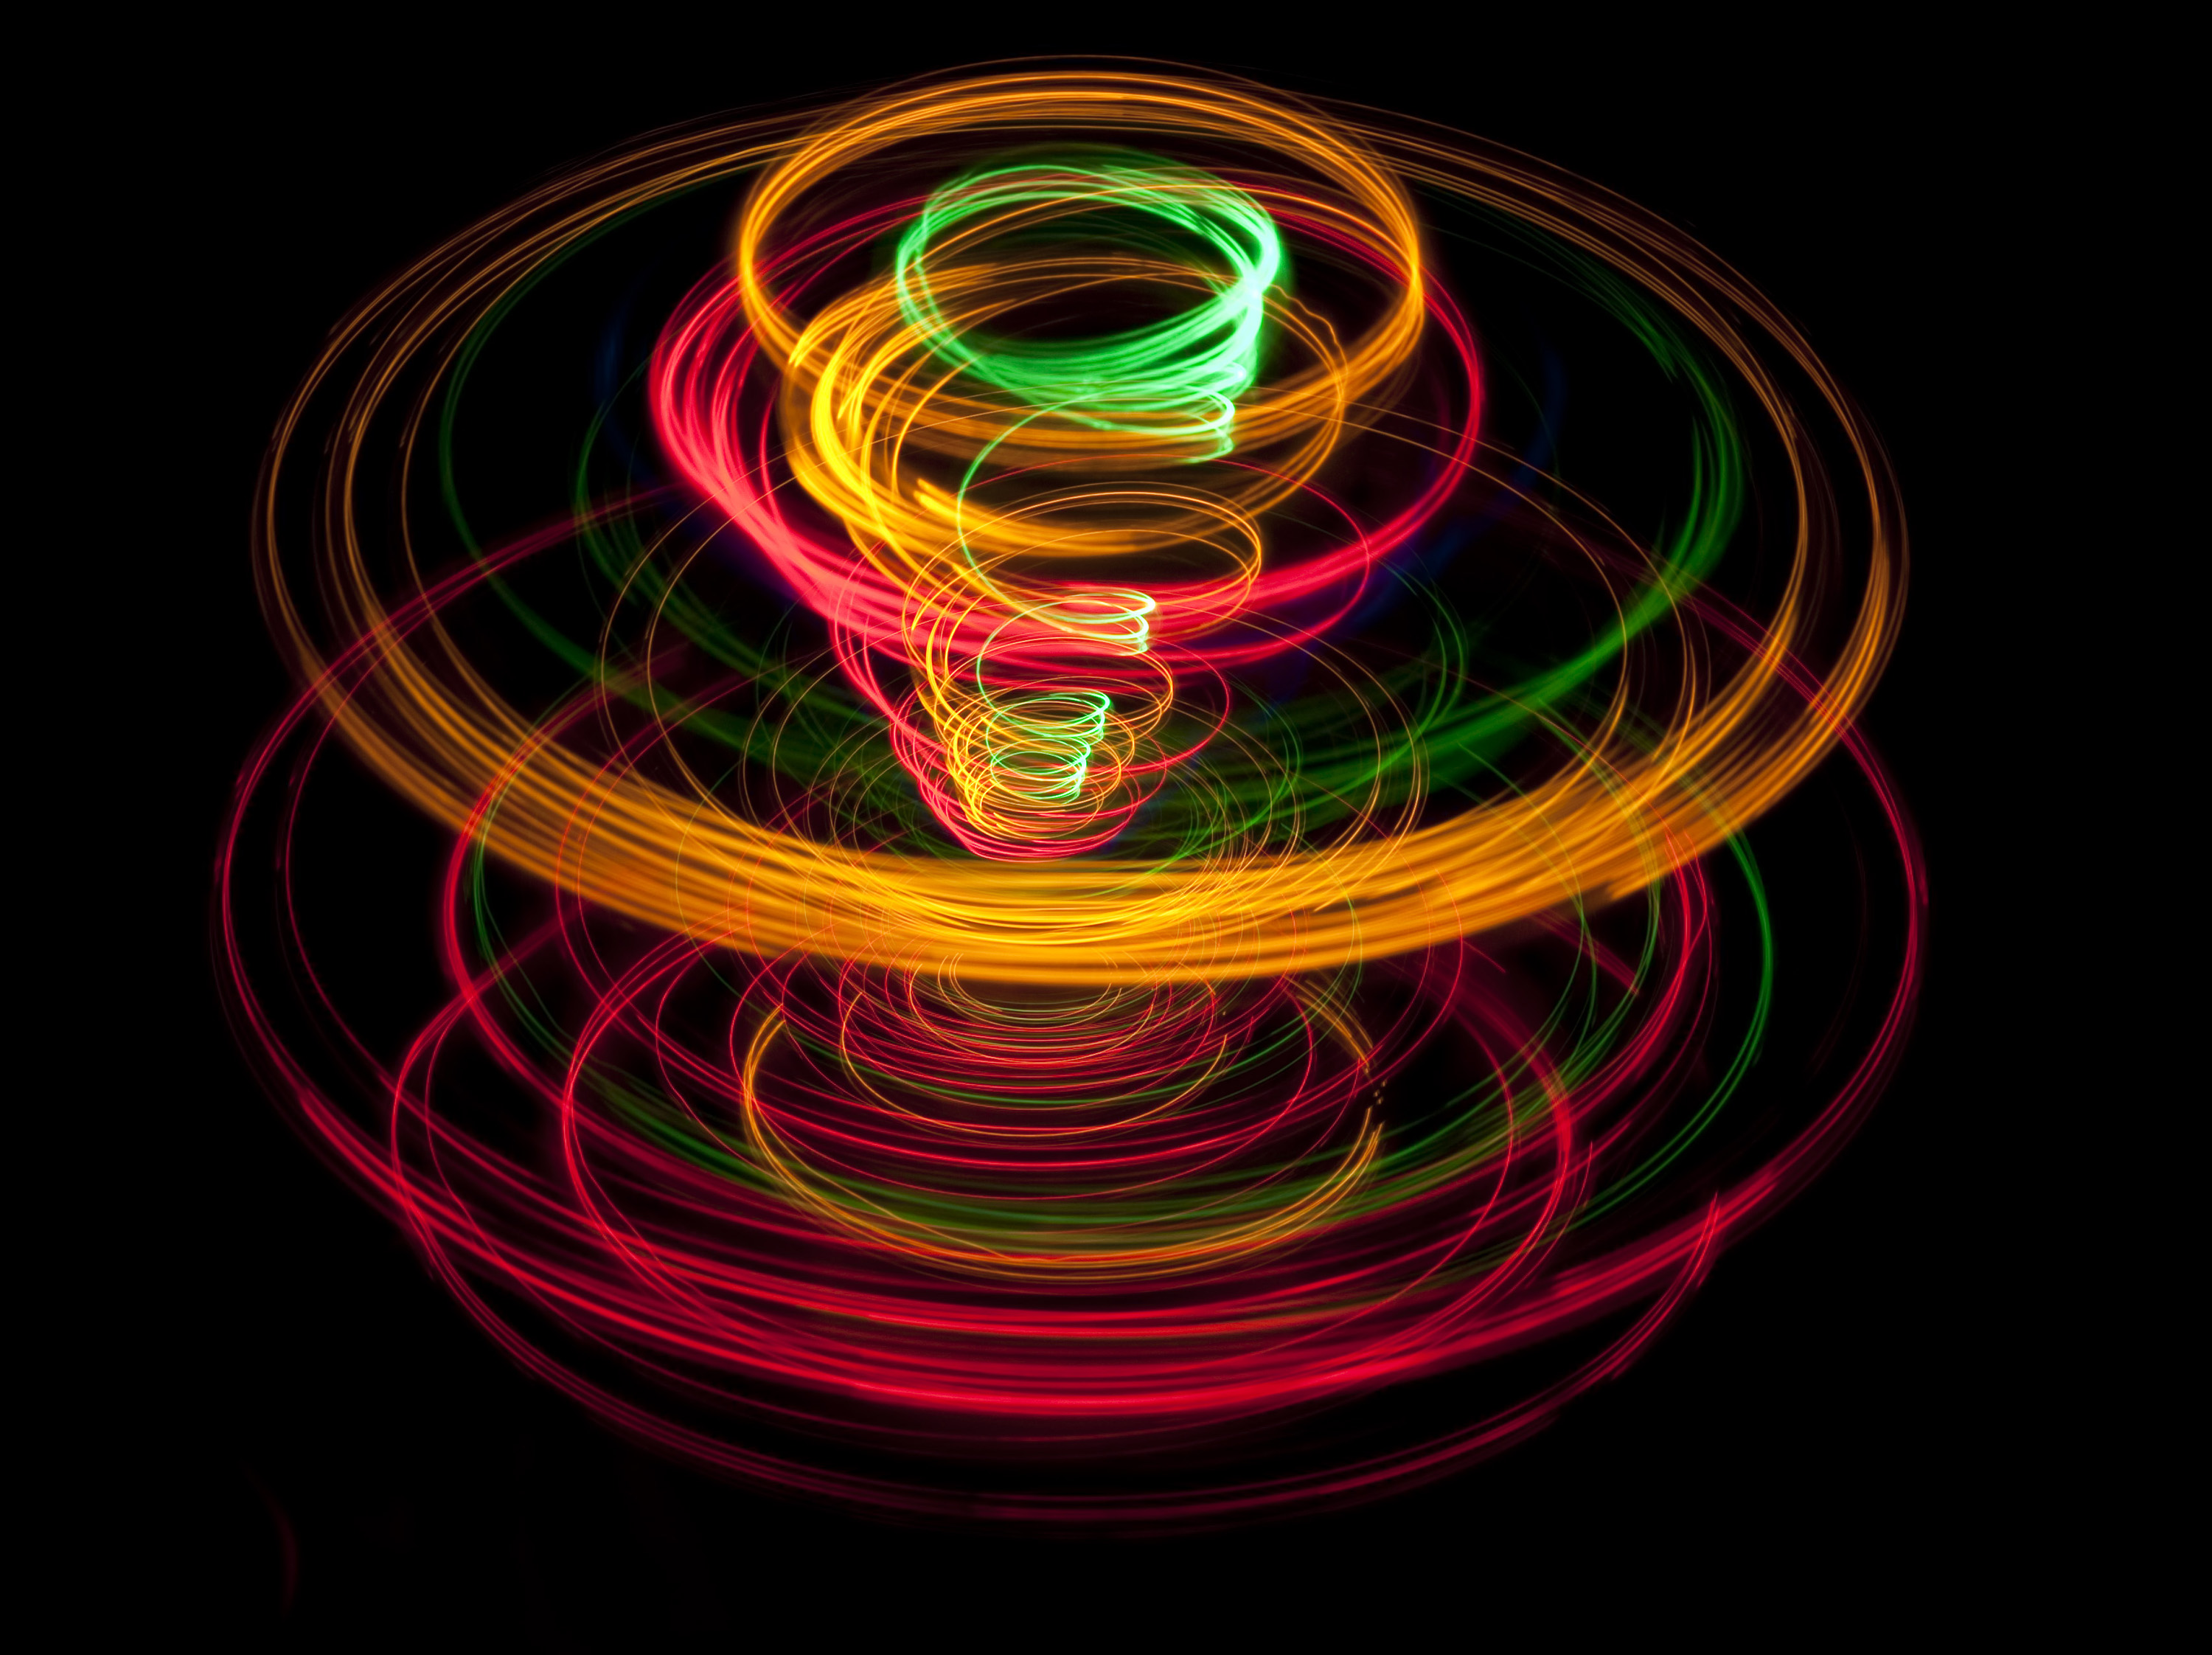 color and movement depicting in a spiraling pattern of light